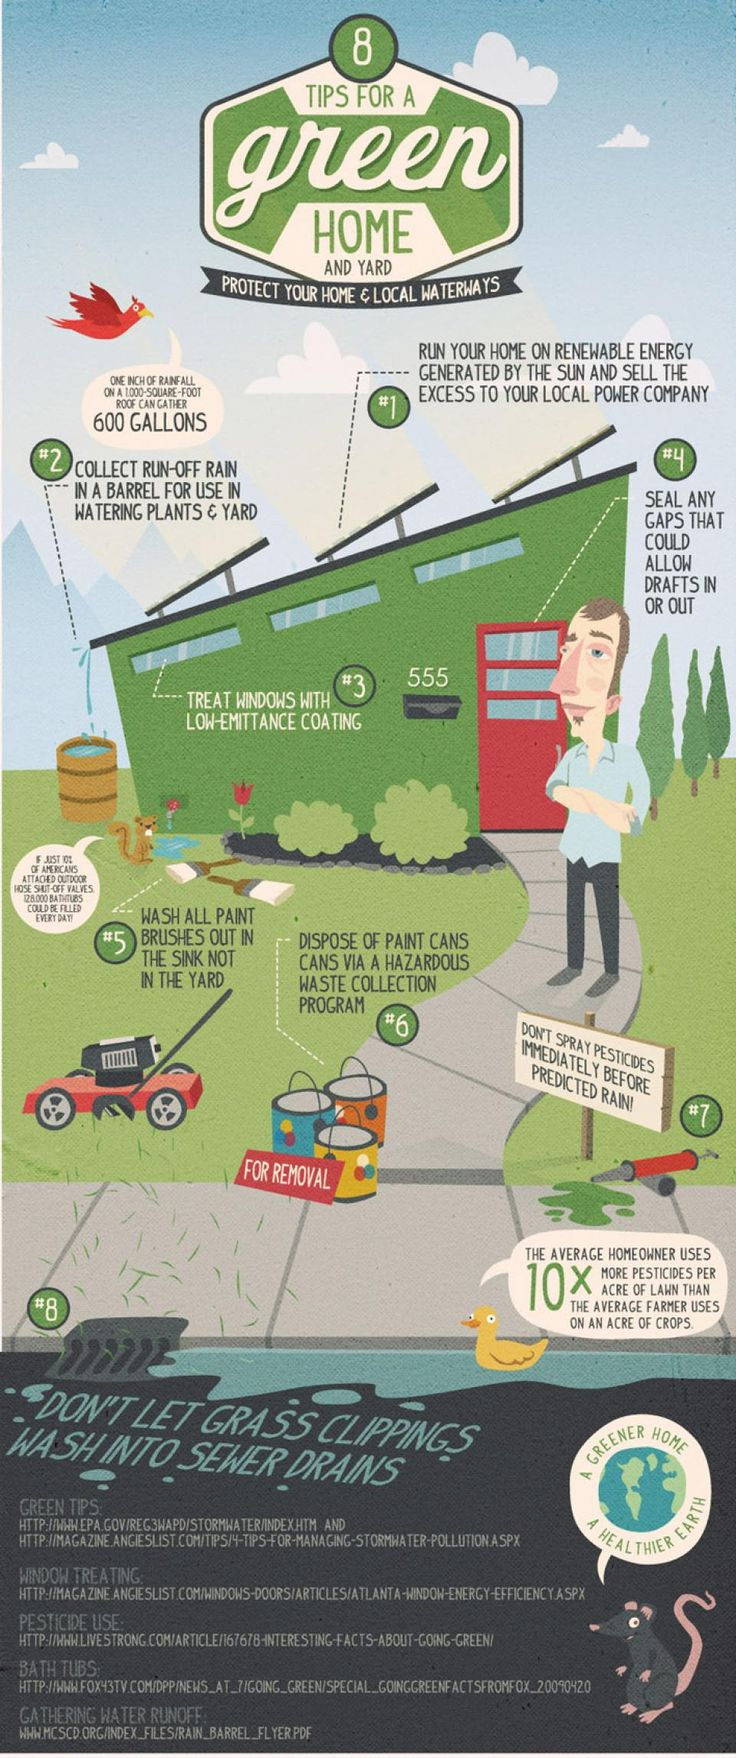 8 tips to reduce your carbon footprint - go green! :)